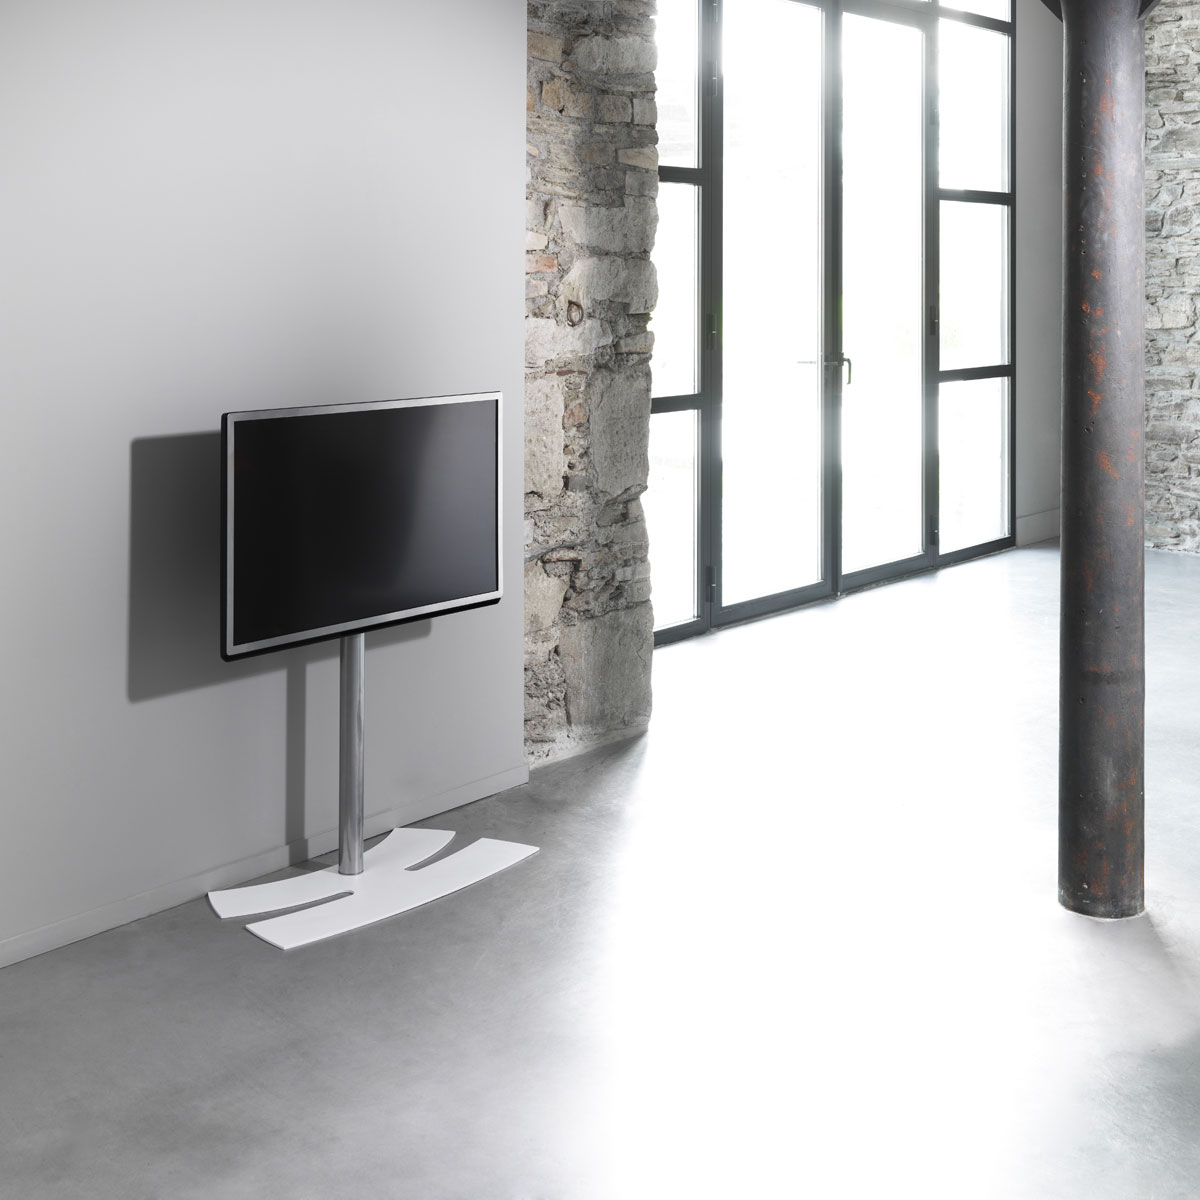 Erard lux up 1050l support mural tv erard group sur ldlc - Fixation mural tv samsung ...